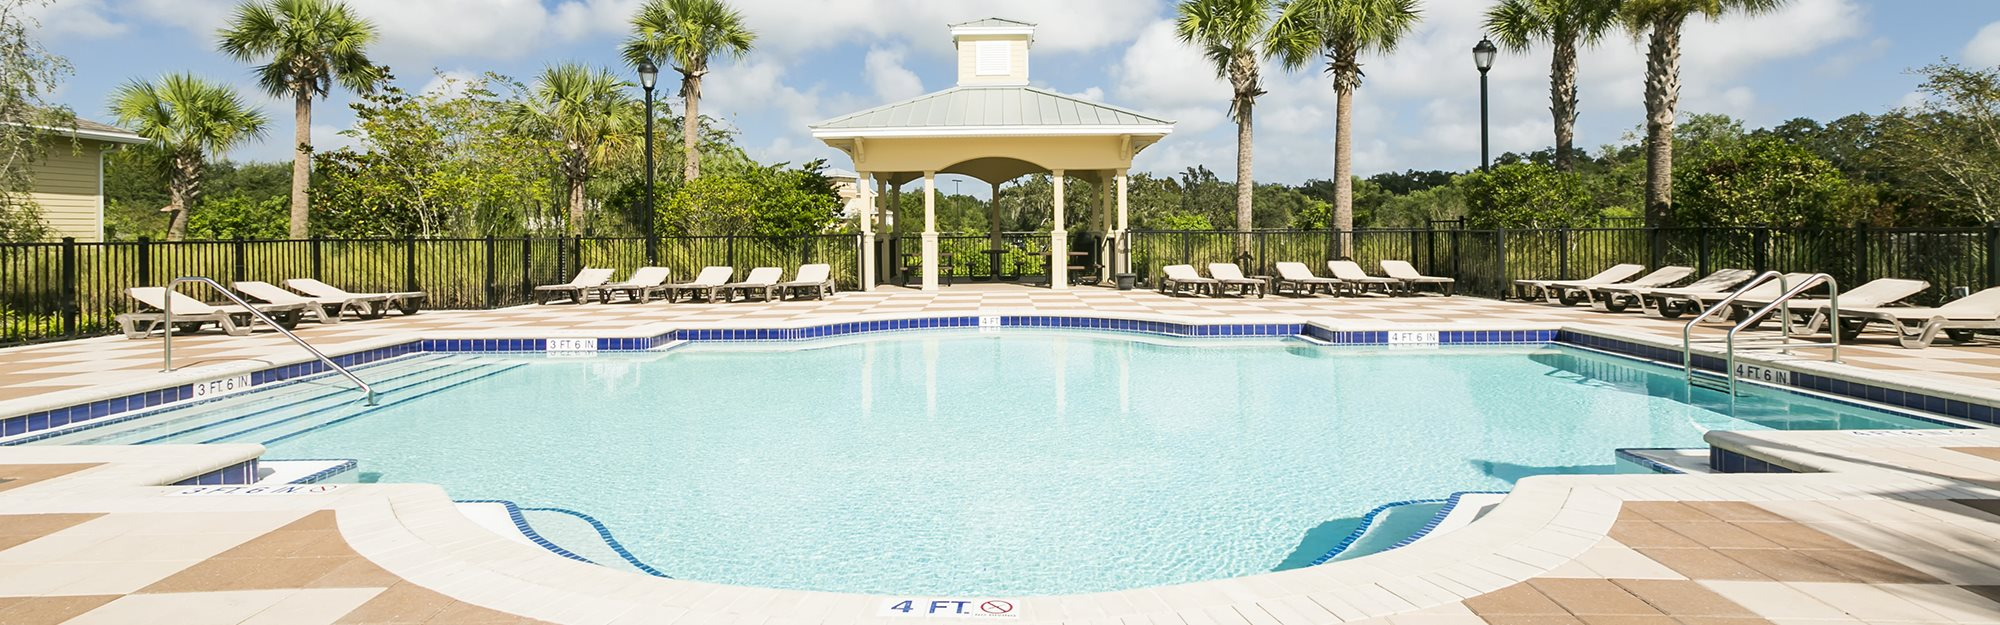 Lakewood Pointe Apartments for rent in Seffner, FL. Make this community your new home or visit other Concord Rents communities at ConcordRents.com. Pool